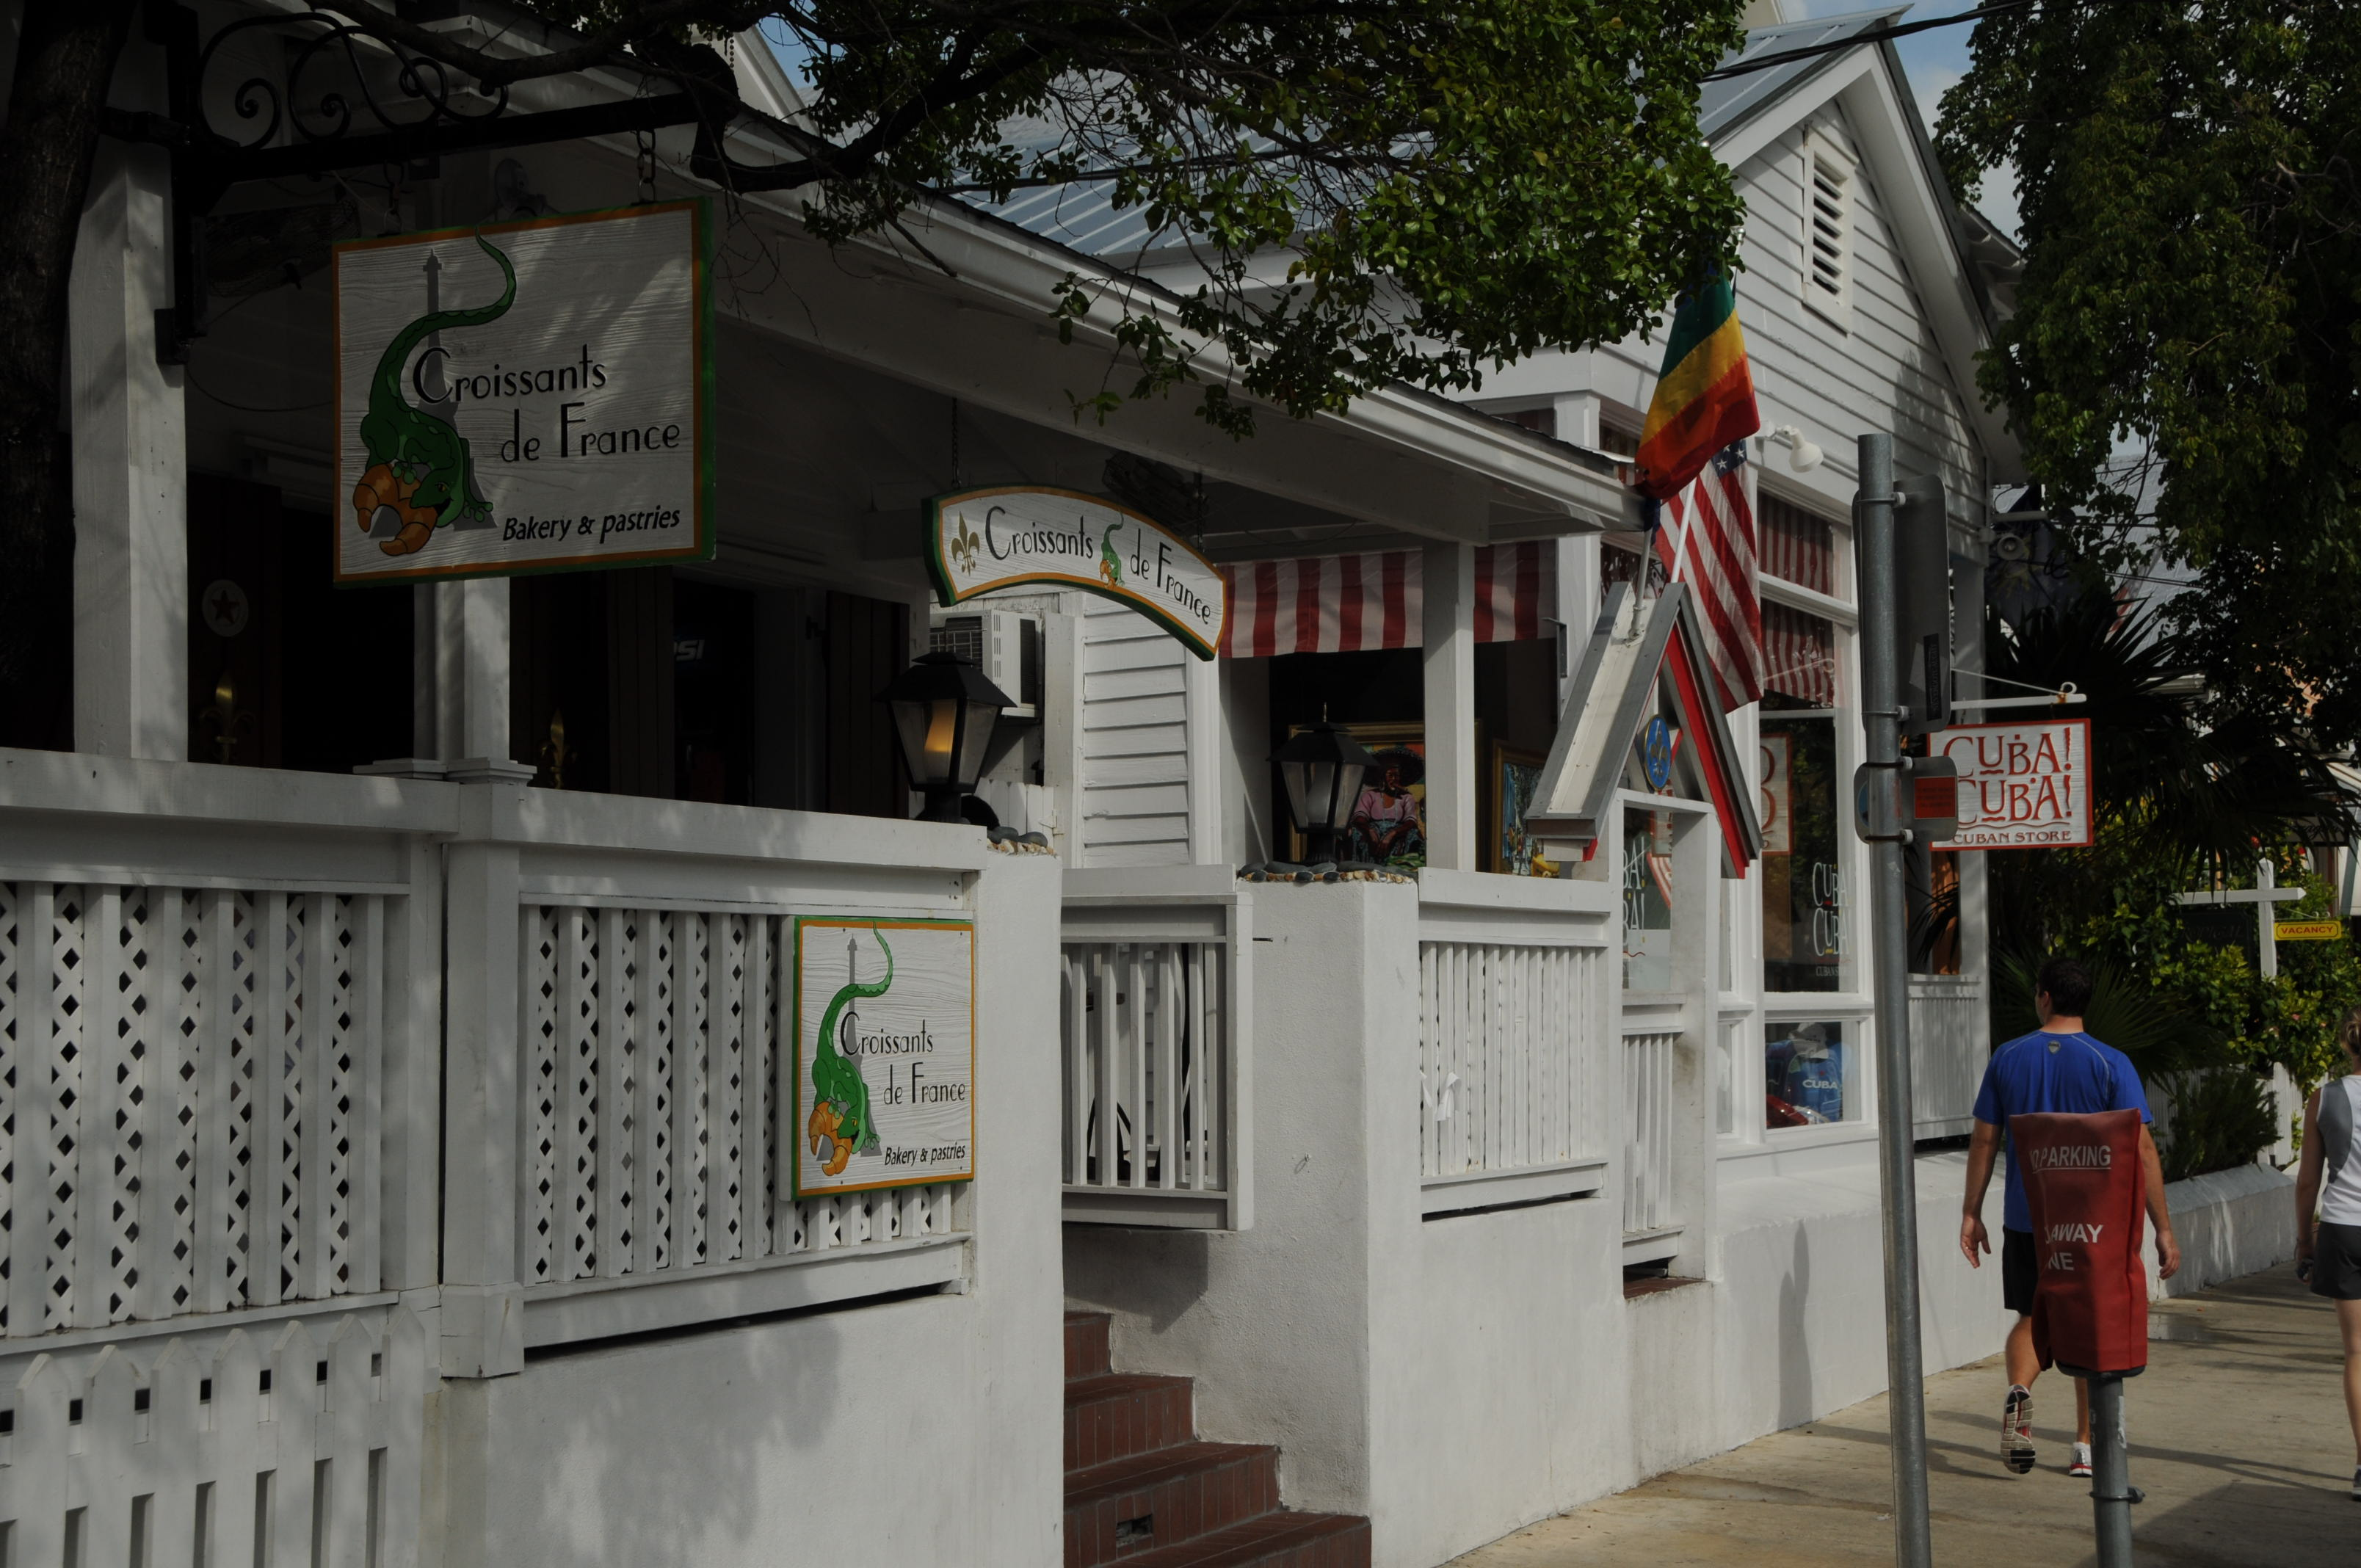 Croissants de France Key West